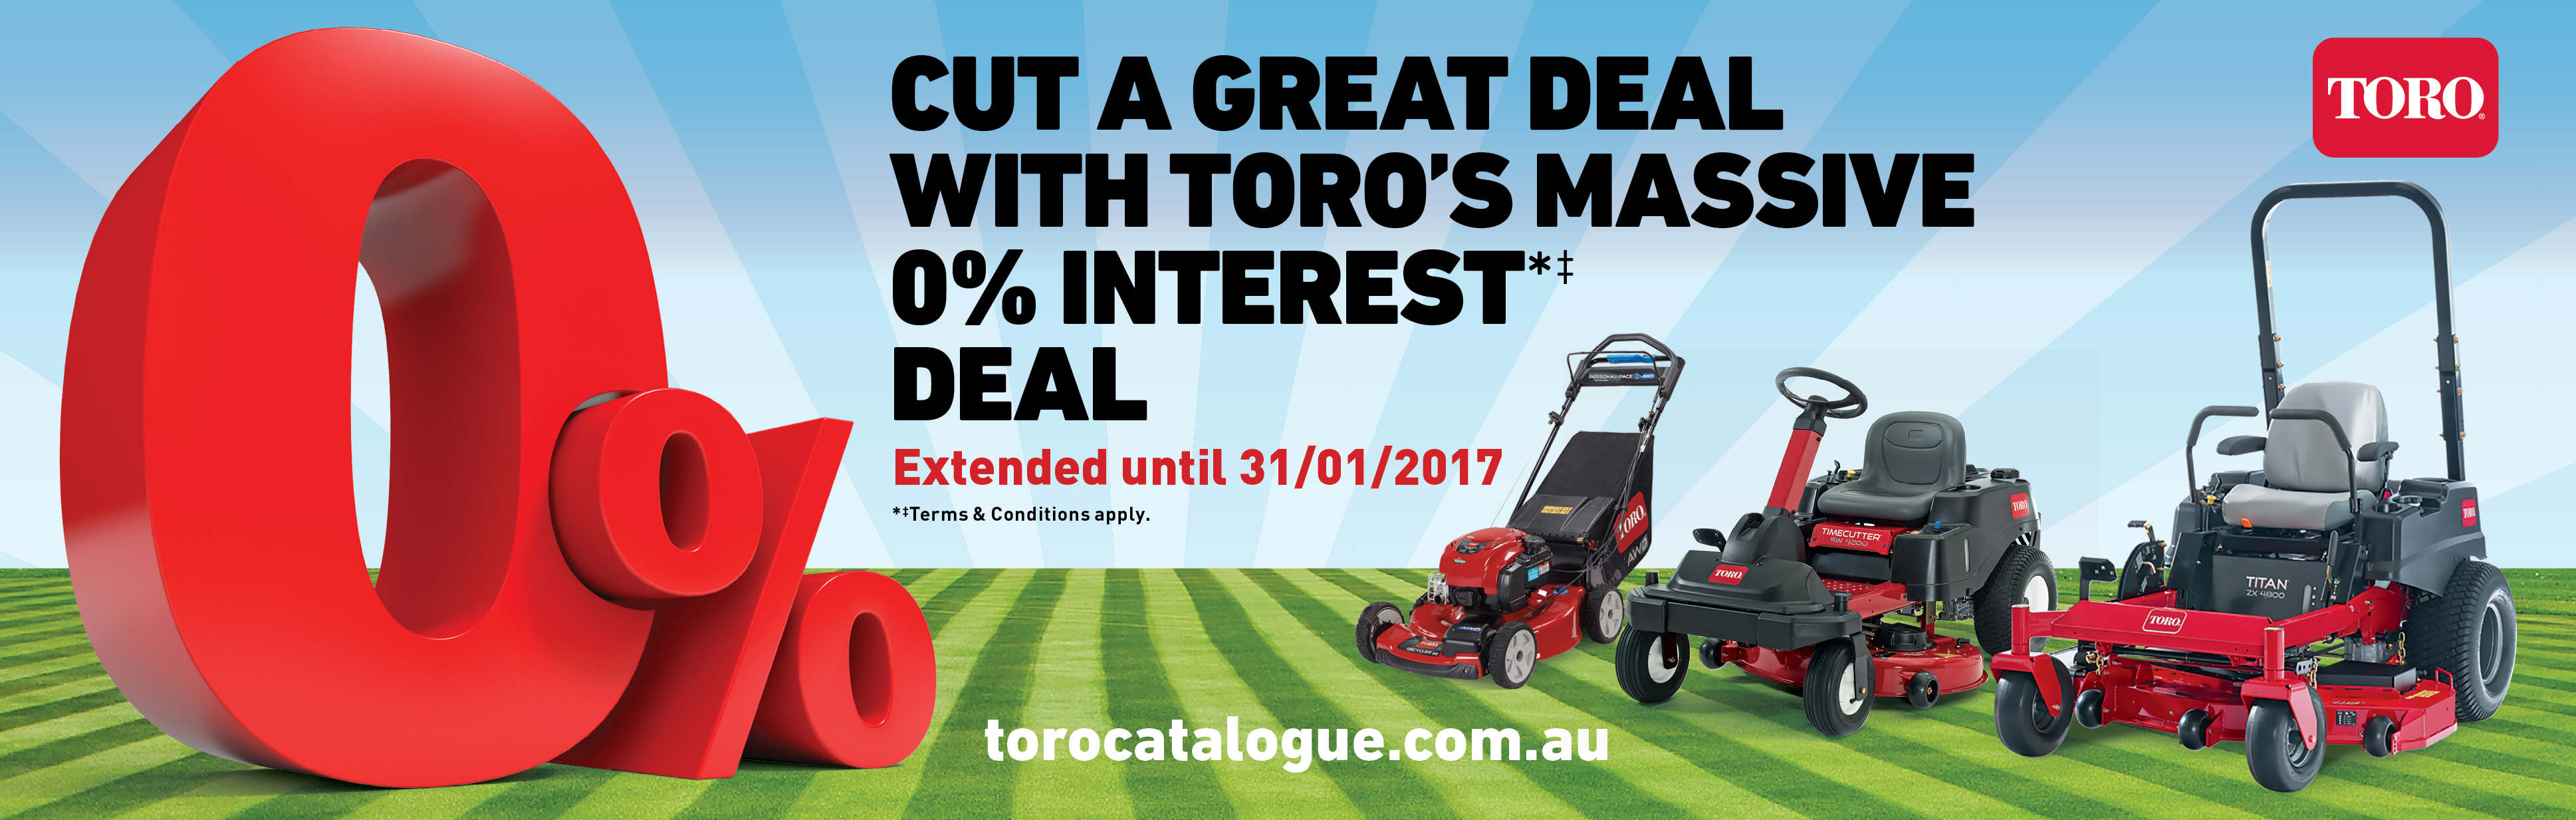 Toe0162 Spring Cat Promotion Details 930X296 3 2 7